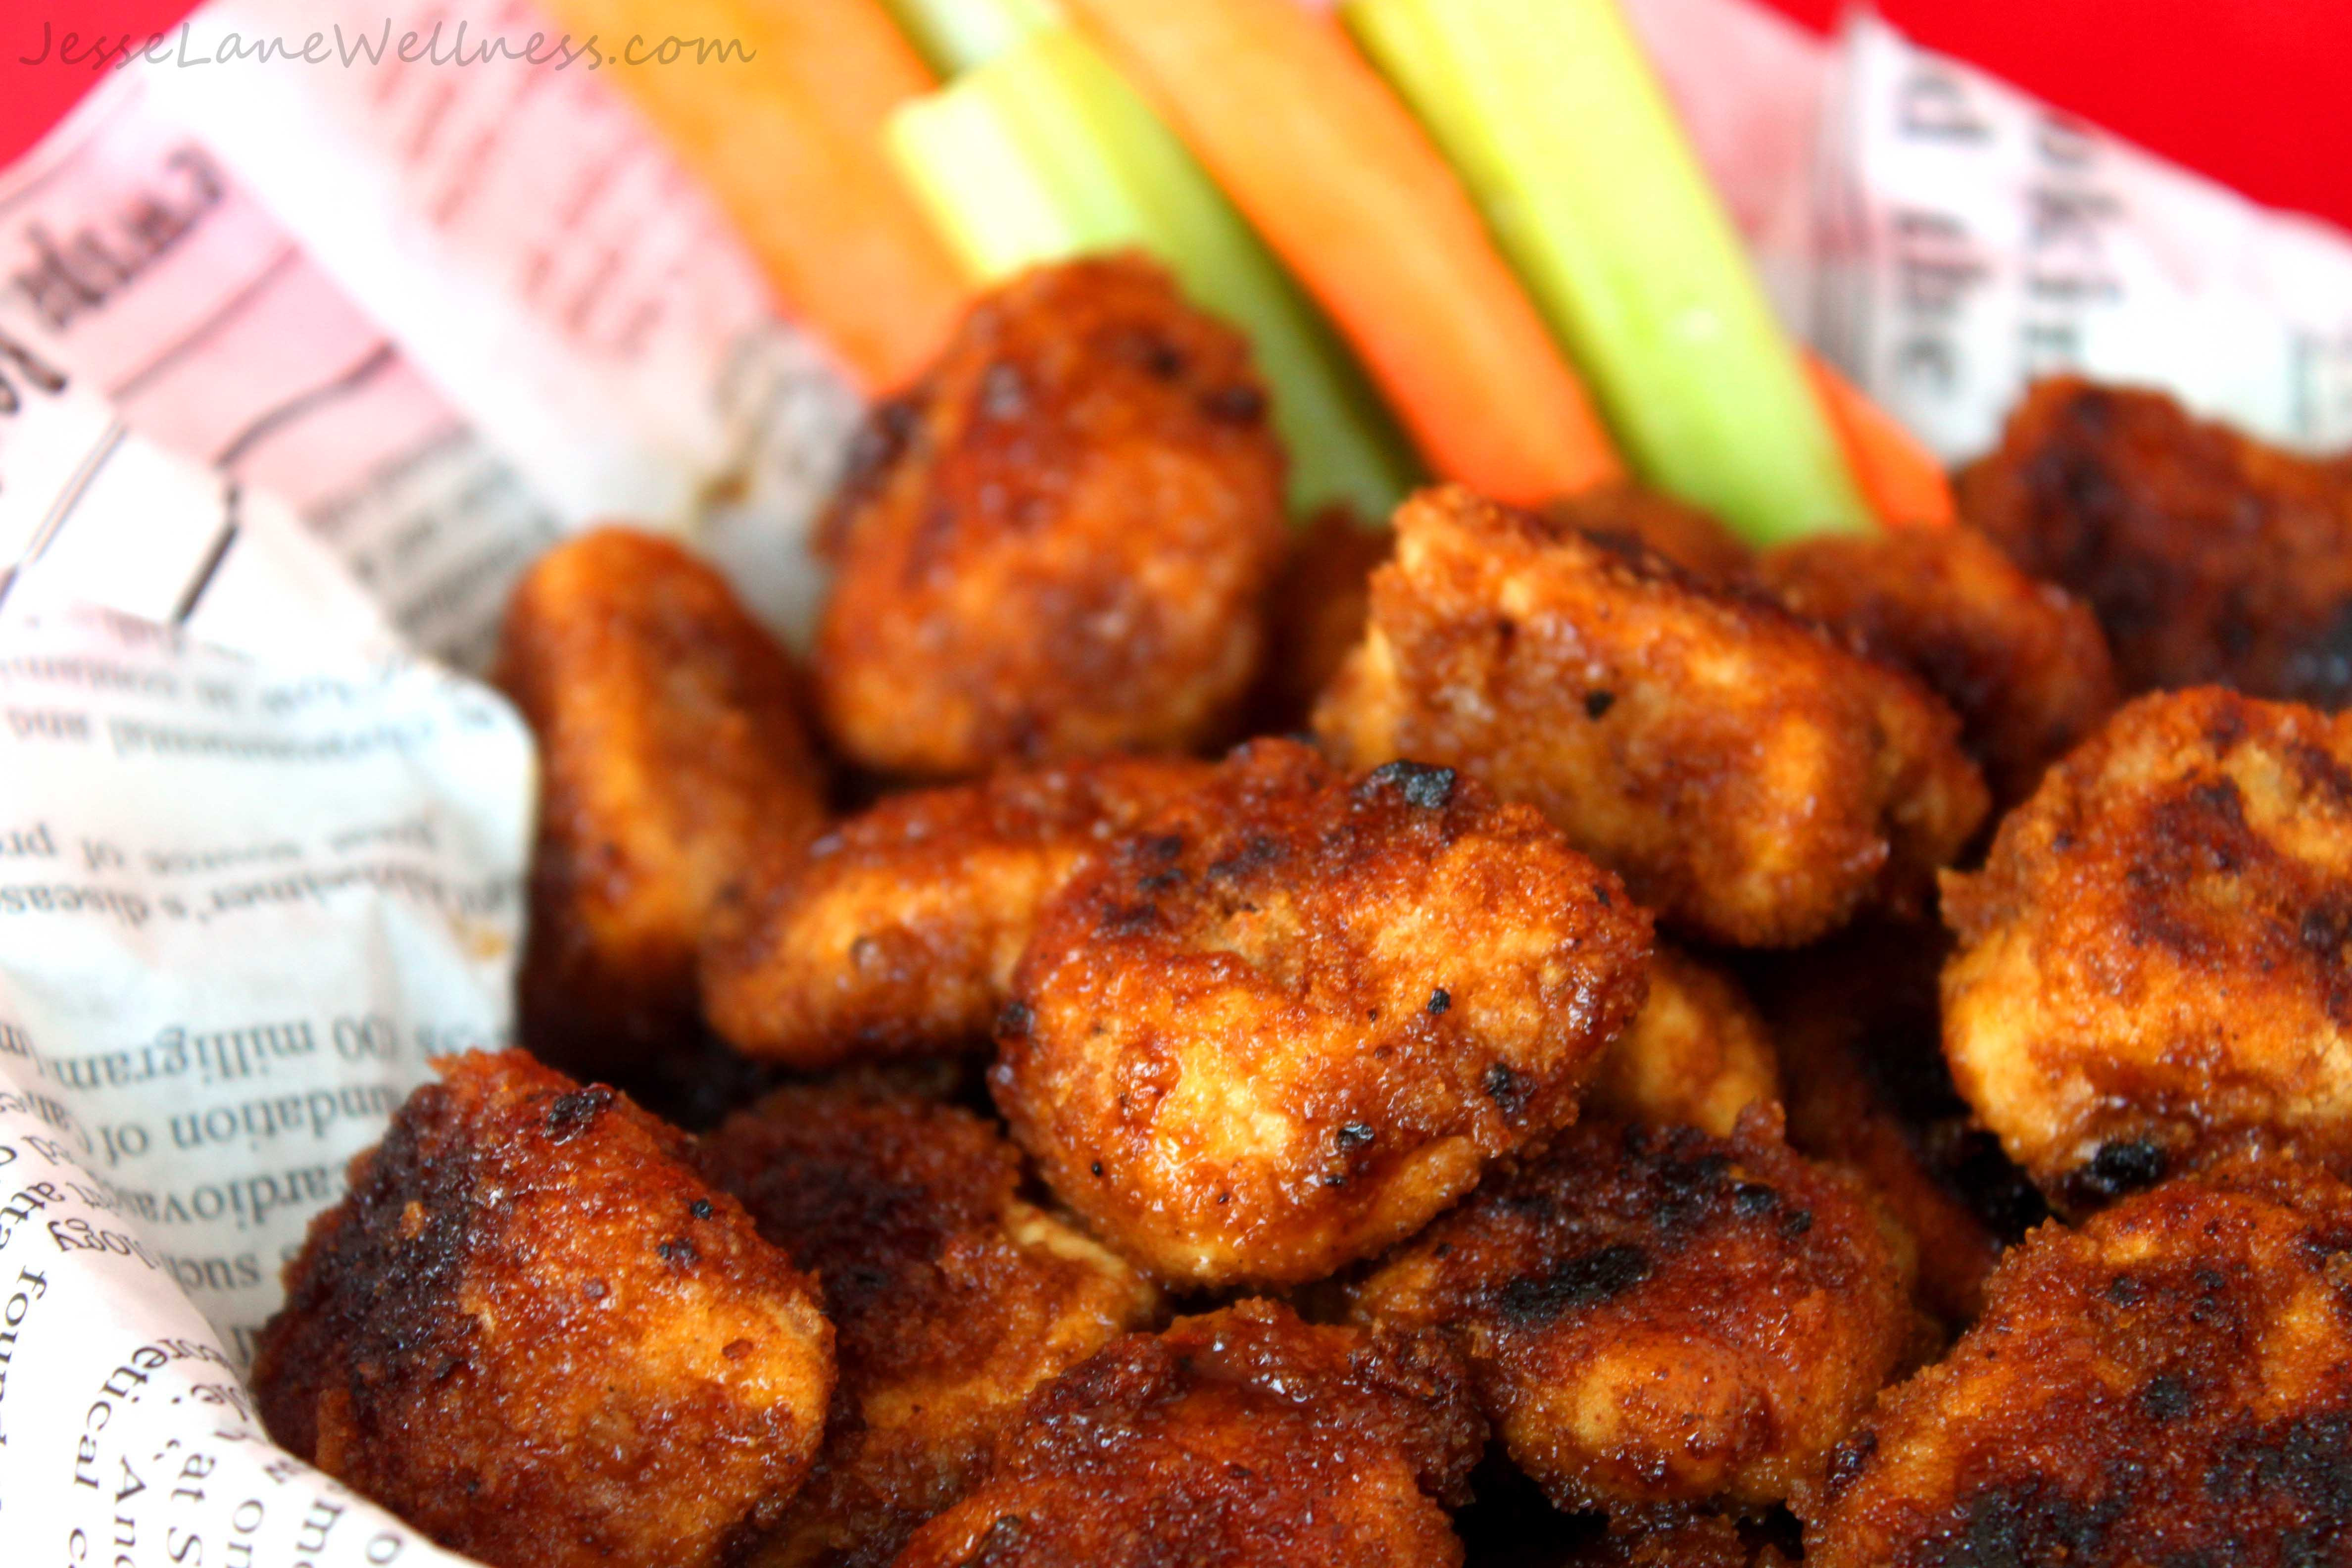 Boneless Chicken Wings Recipe  Boneless Chicken Wings Gluten Free by Jesse Lane